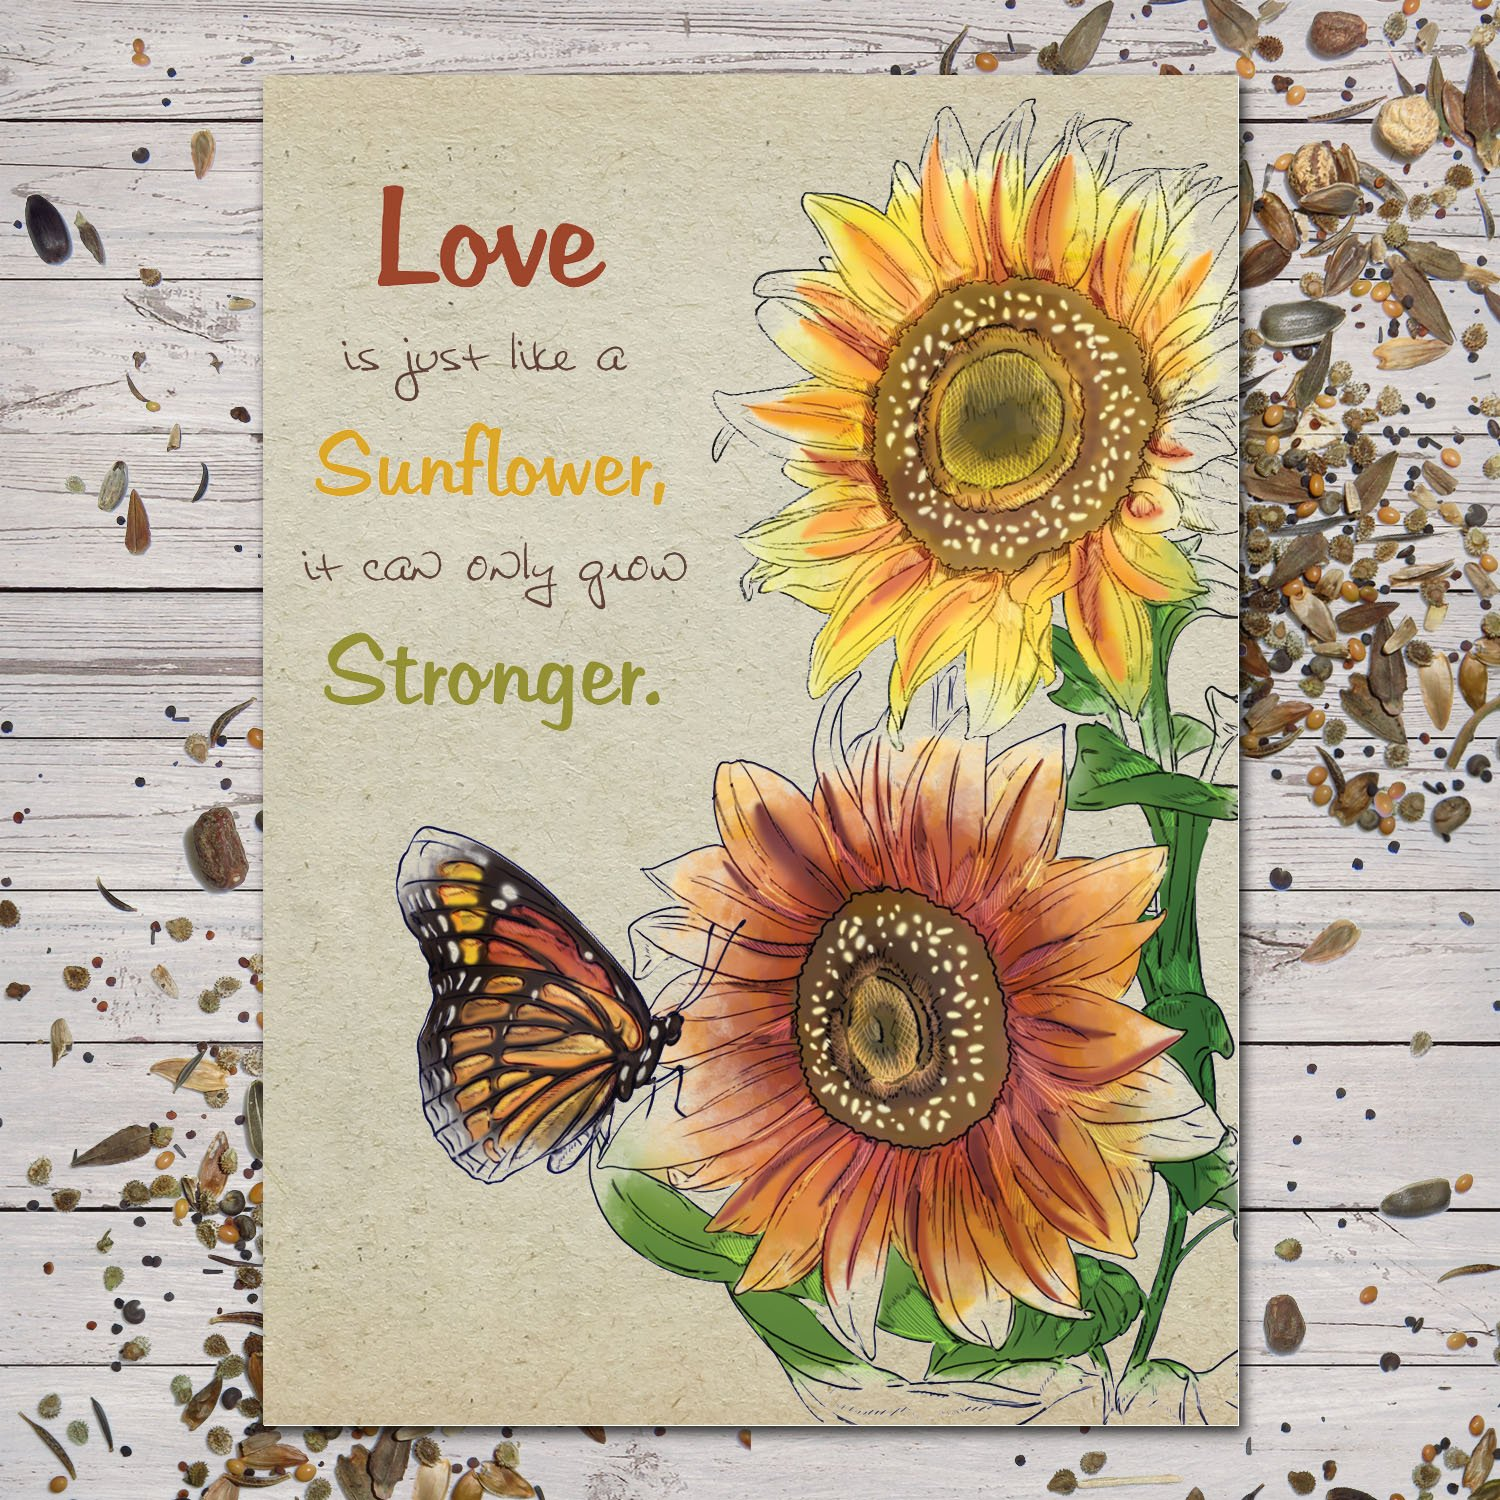 Amazon Set Of 25 Sunflower Seed Packet Favors F05 Love Is